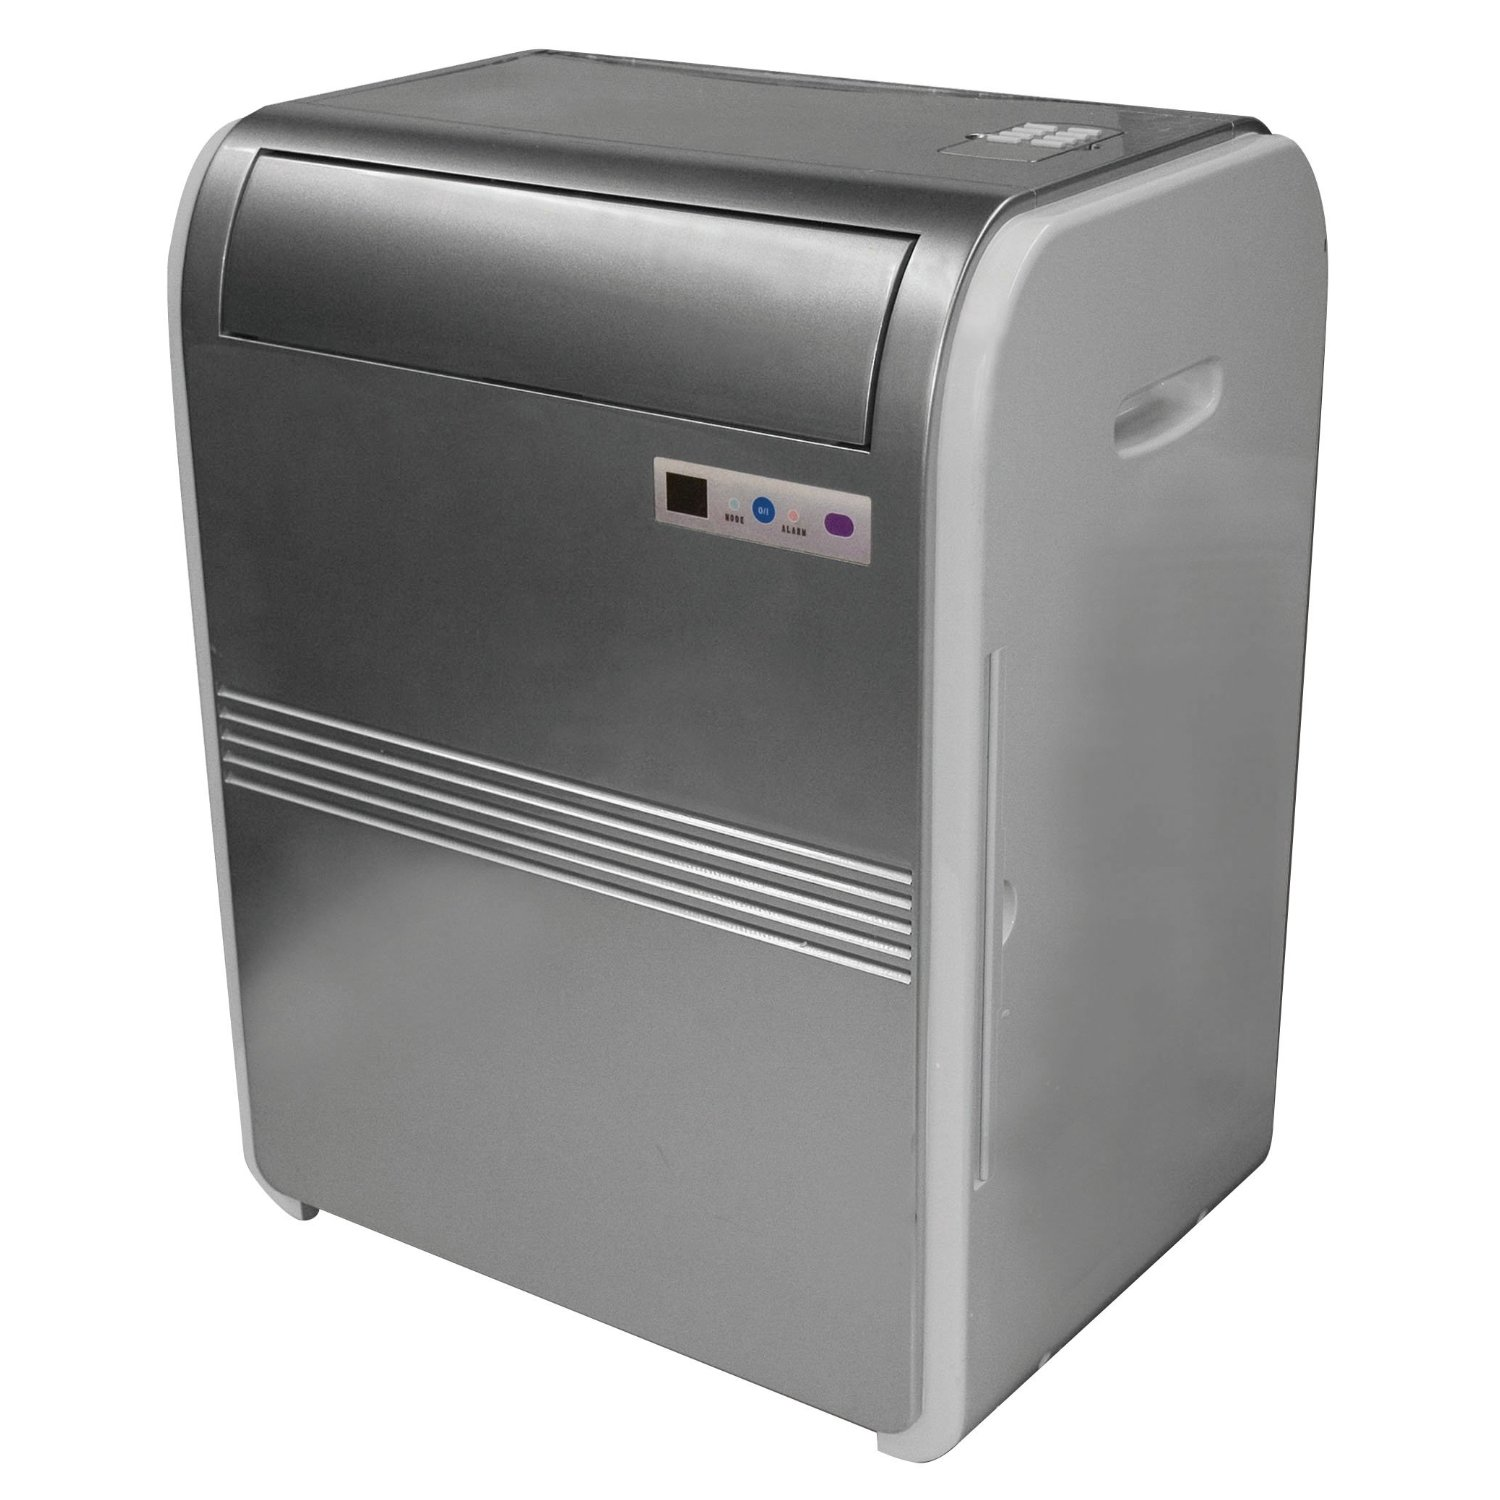 Haier Portable Air Conditioner 8000 BTUs CPRB08XCJ Avi Depot=Much  #383669